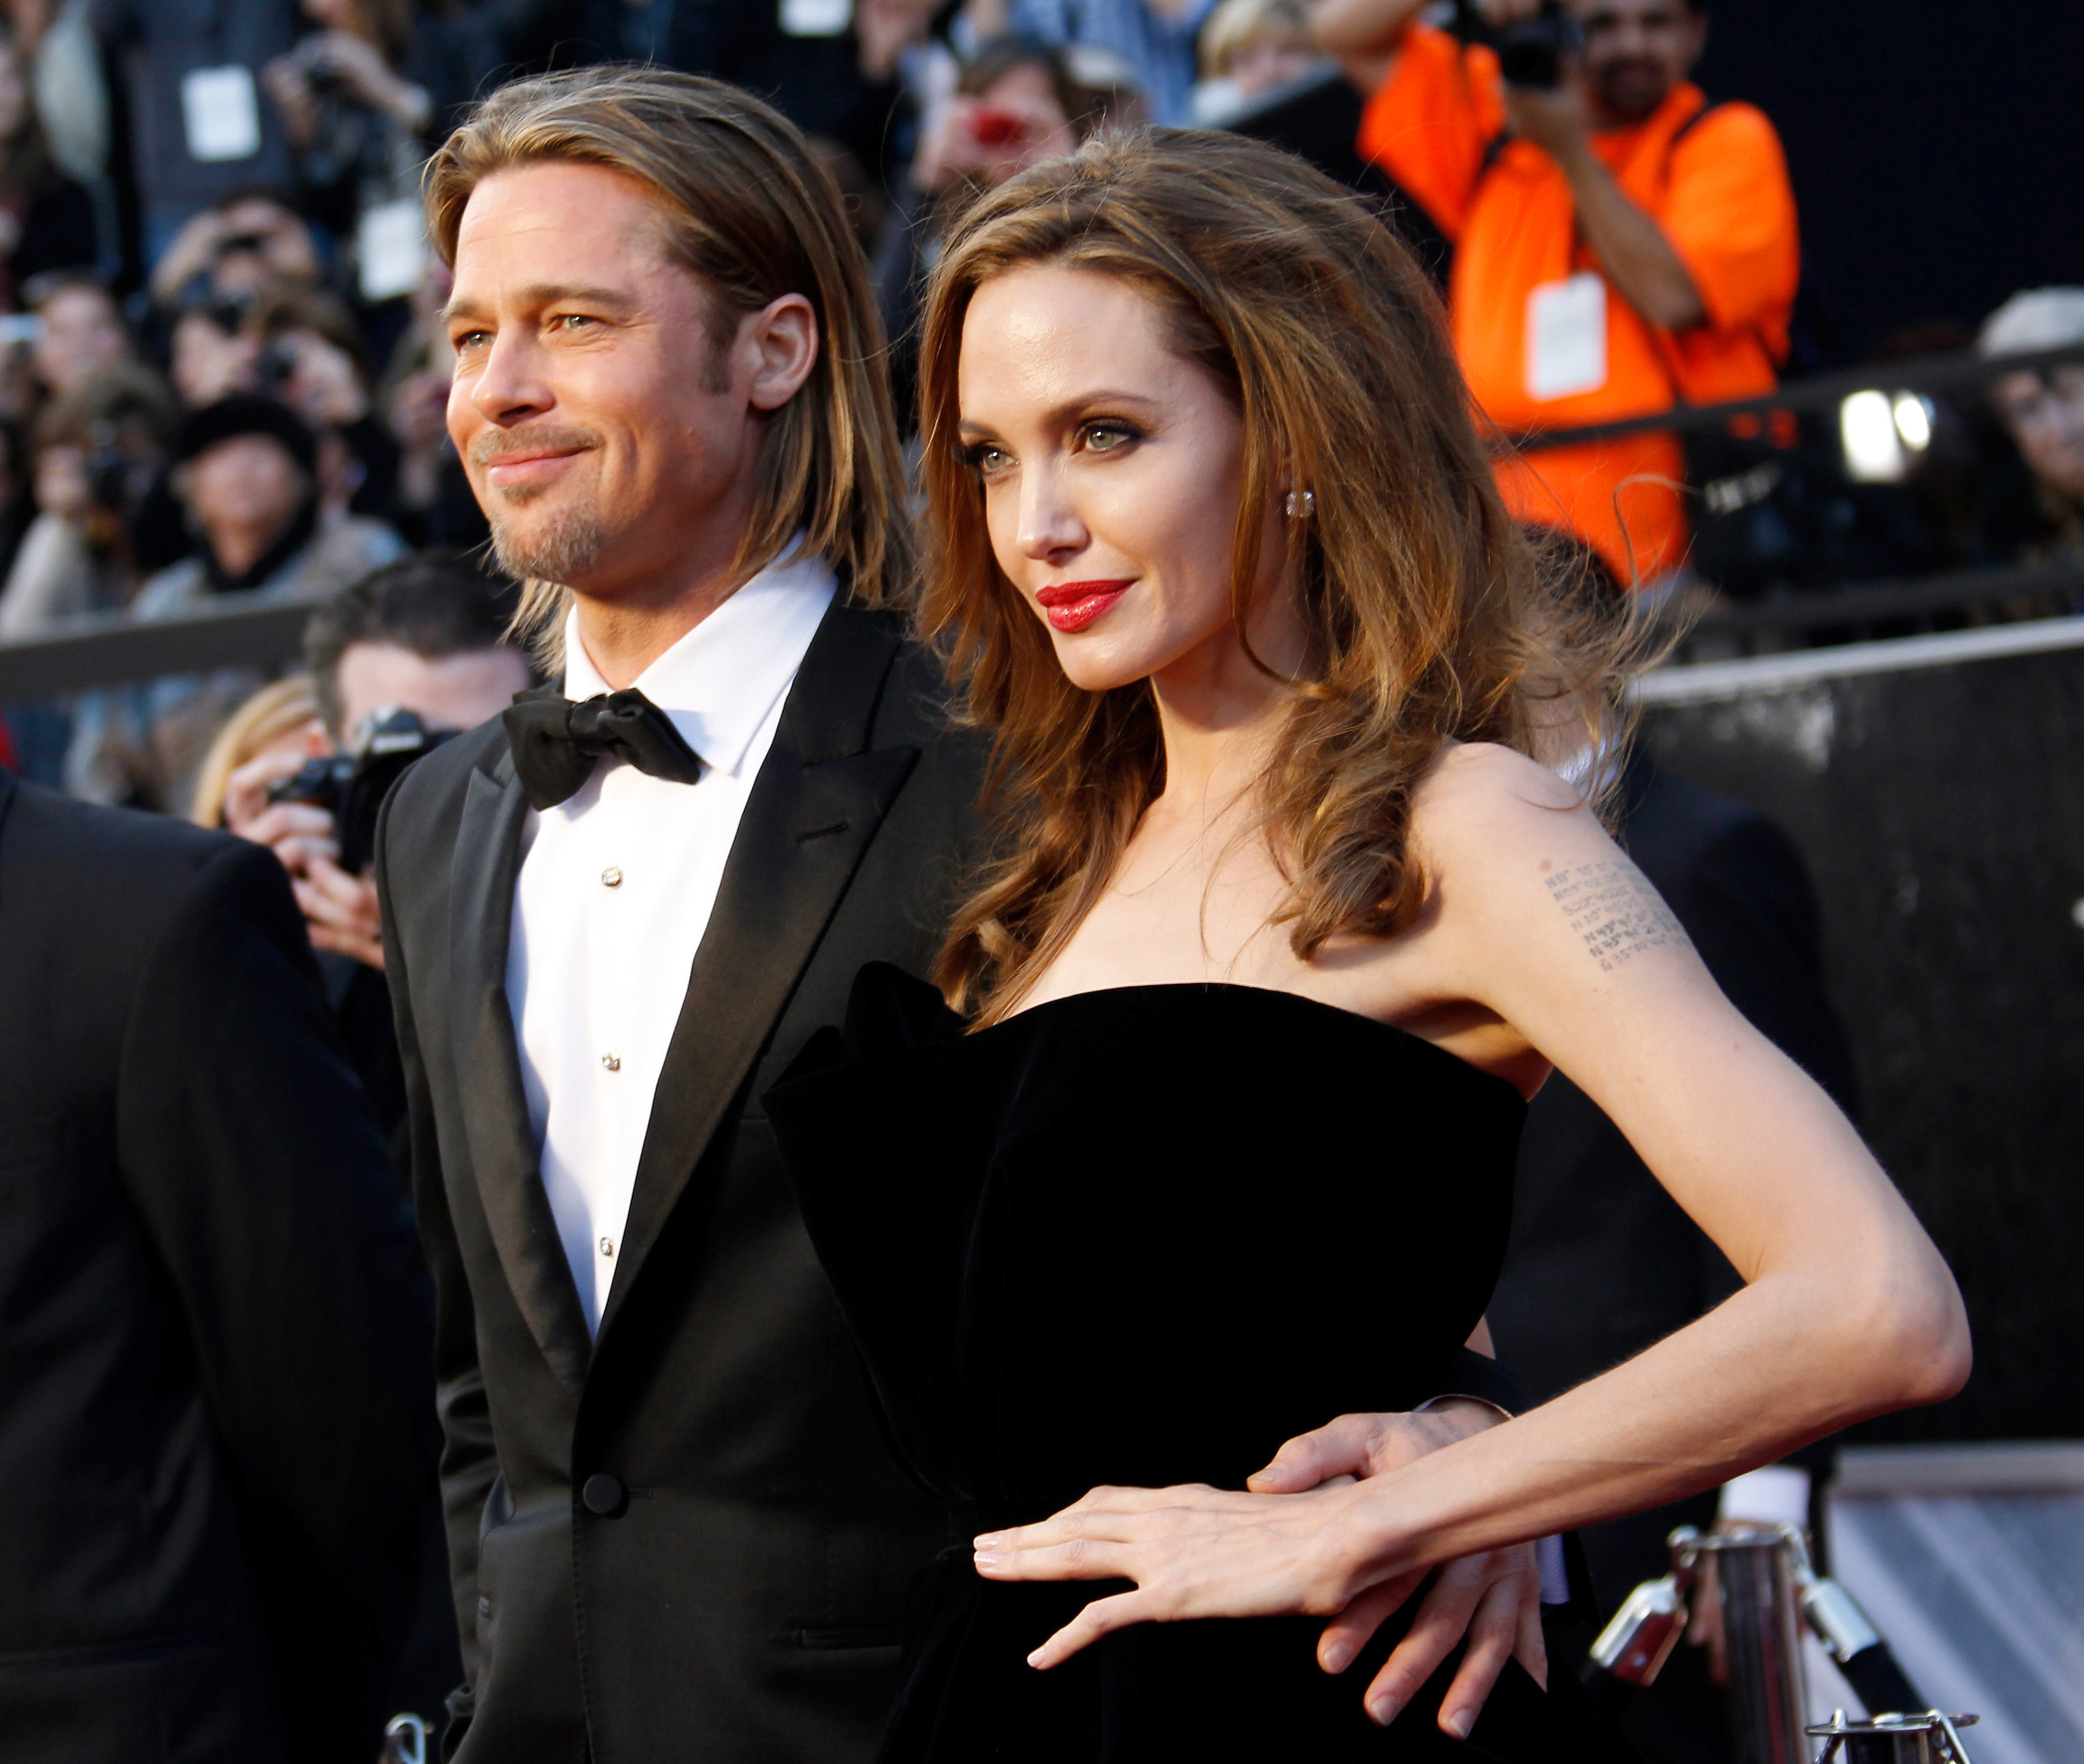 Angelina Jolie Doubled Down On Her Claim That Brad Pitt Has Not Paid Child Support